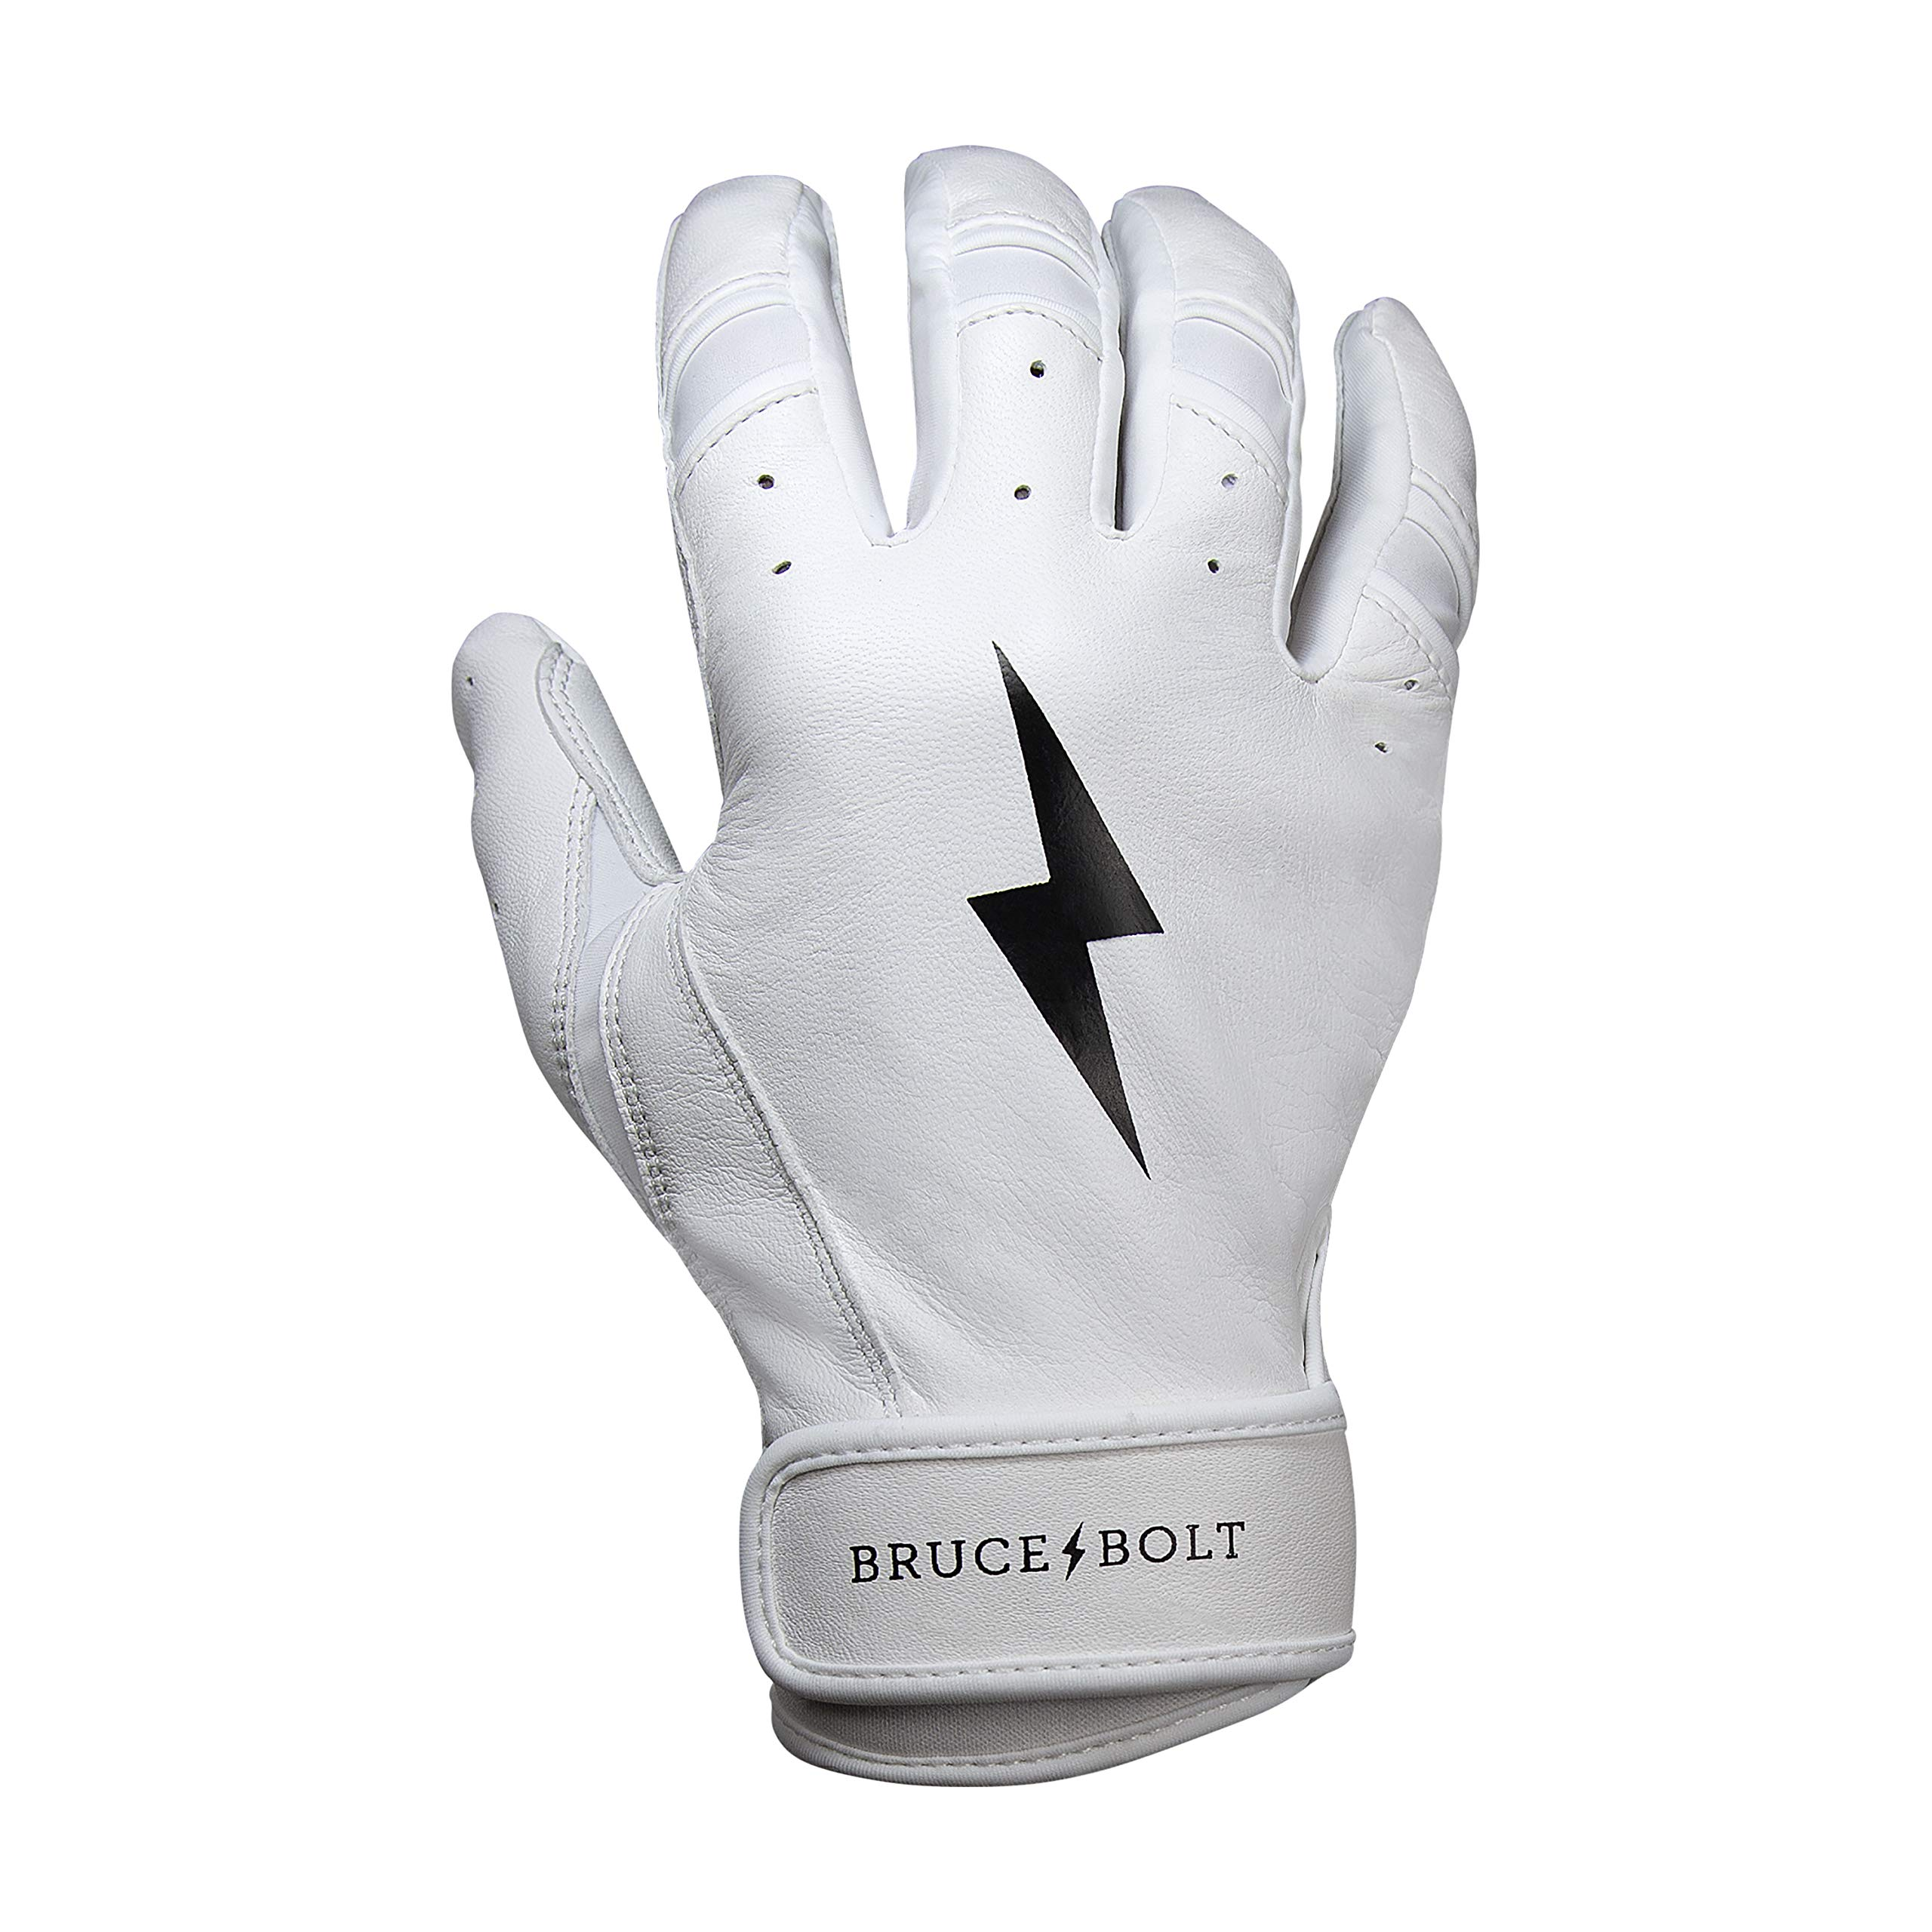 BRUCE+BOLT Premium Short Cuff Batting Gloves - White Medium SWM